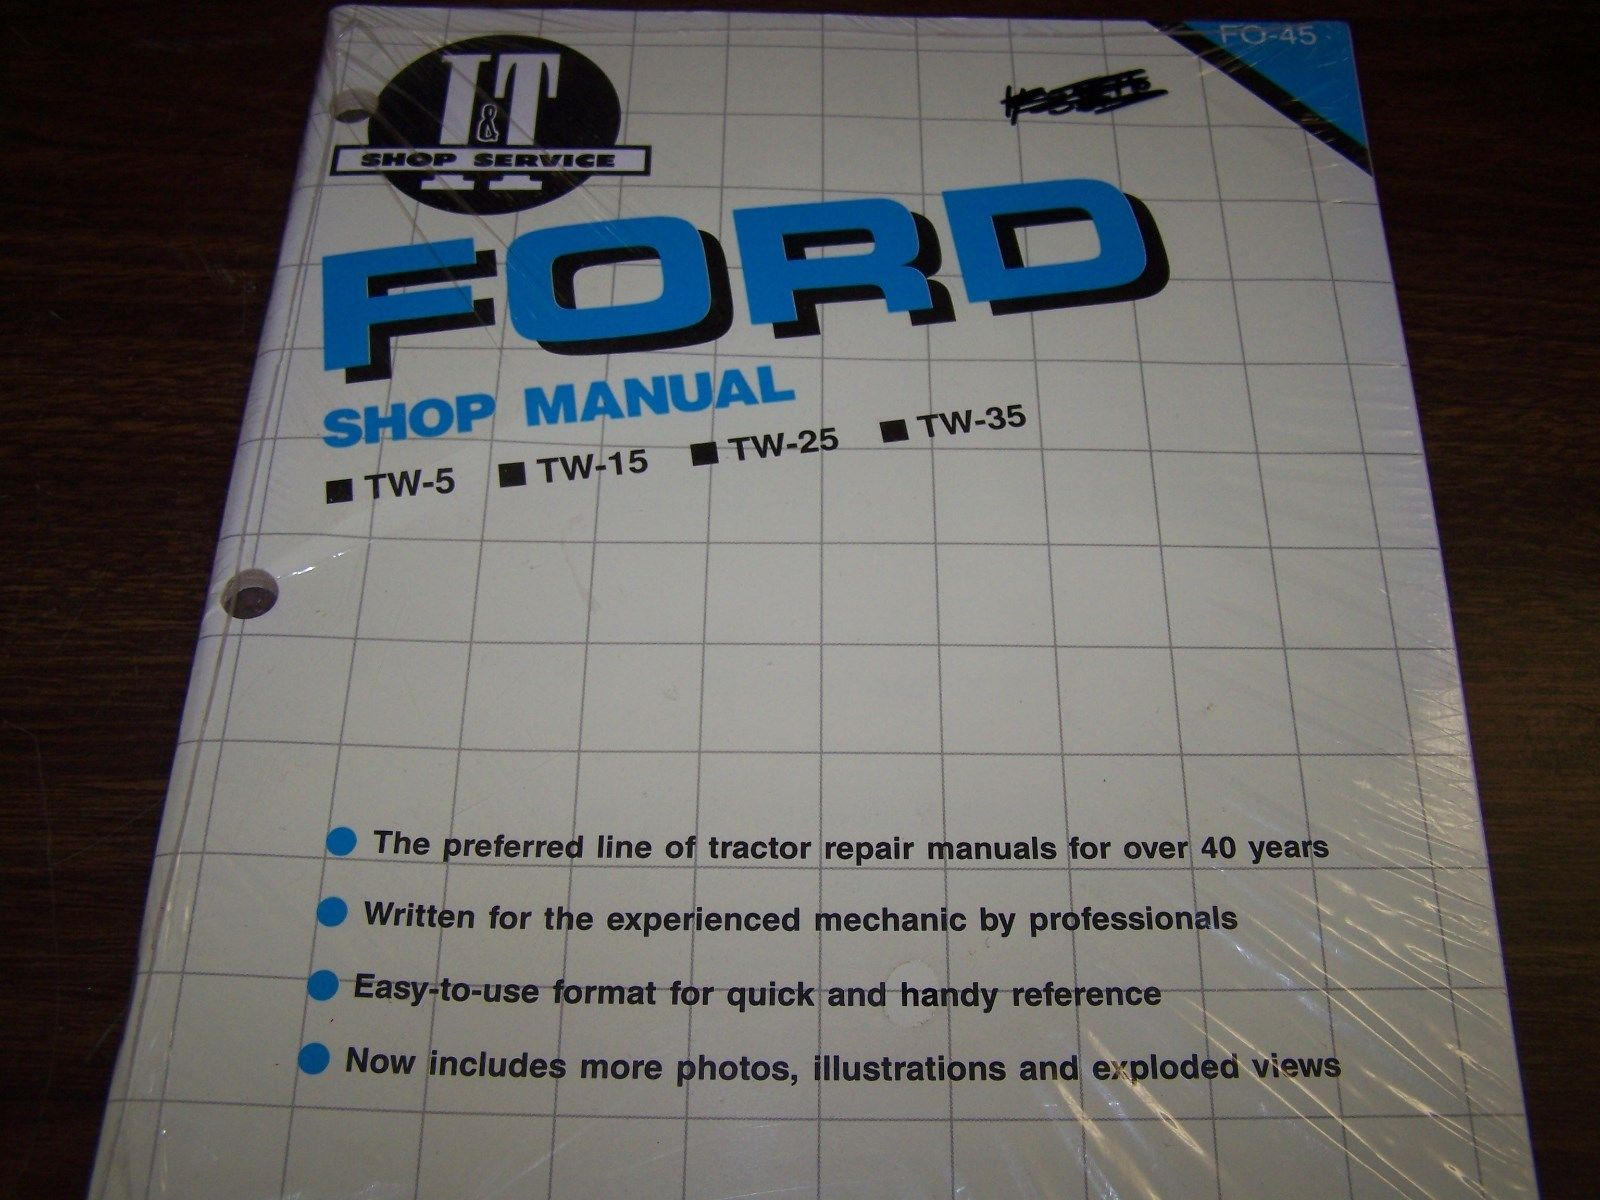 Ford New Holland Shop Manual  TW15, TW25, TW35, TW5-A-SMFO45